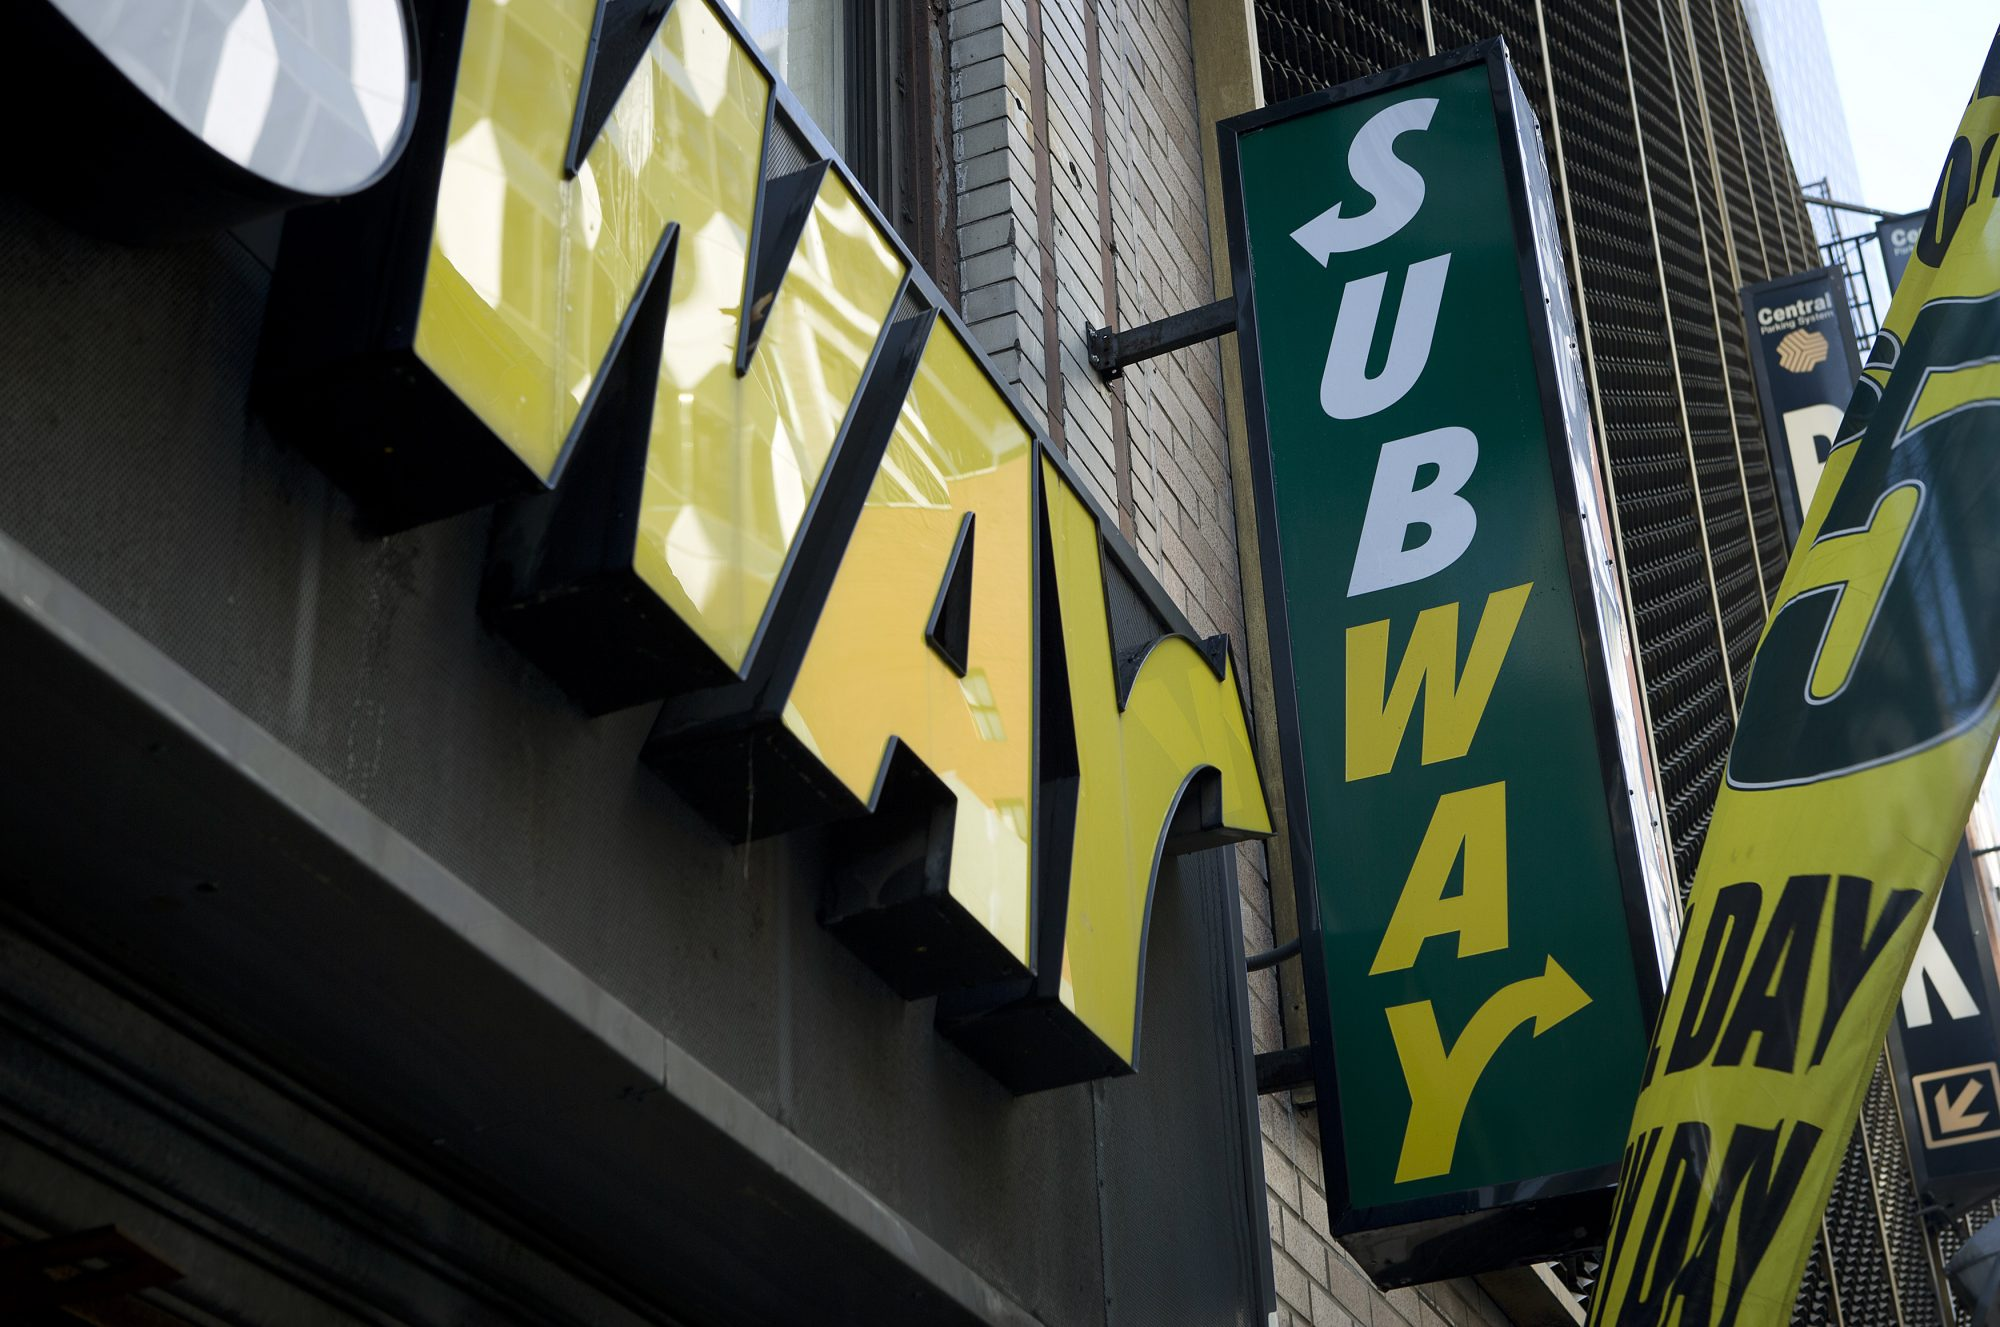 Subway's $5 Footlong Sandwich May Be Gone—Depending on Where You Live